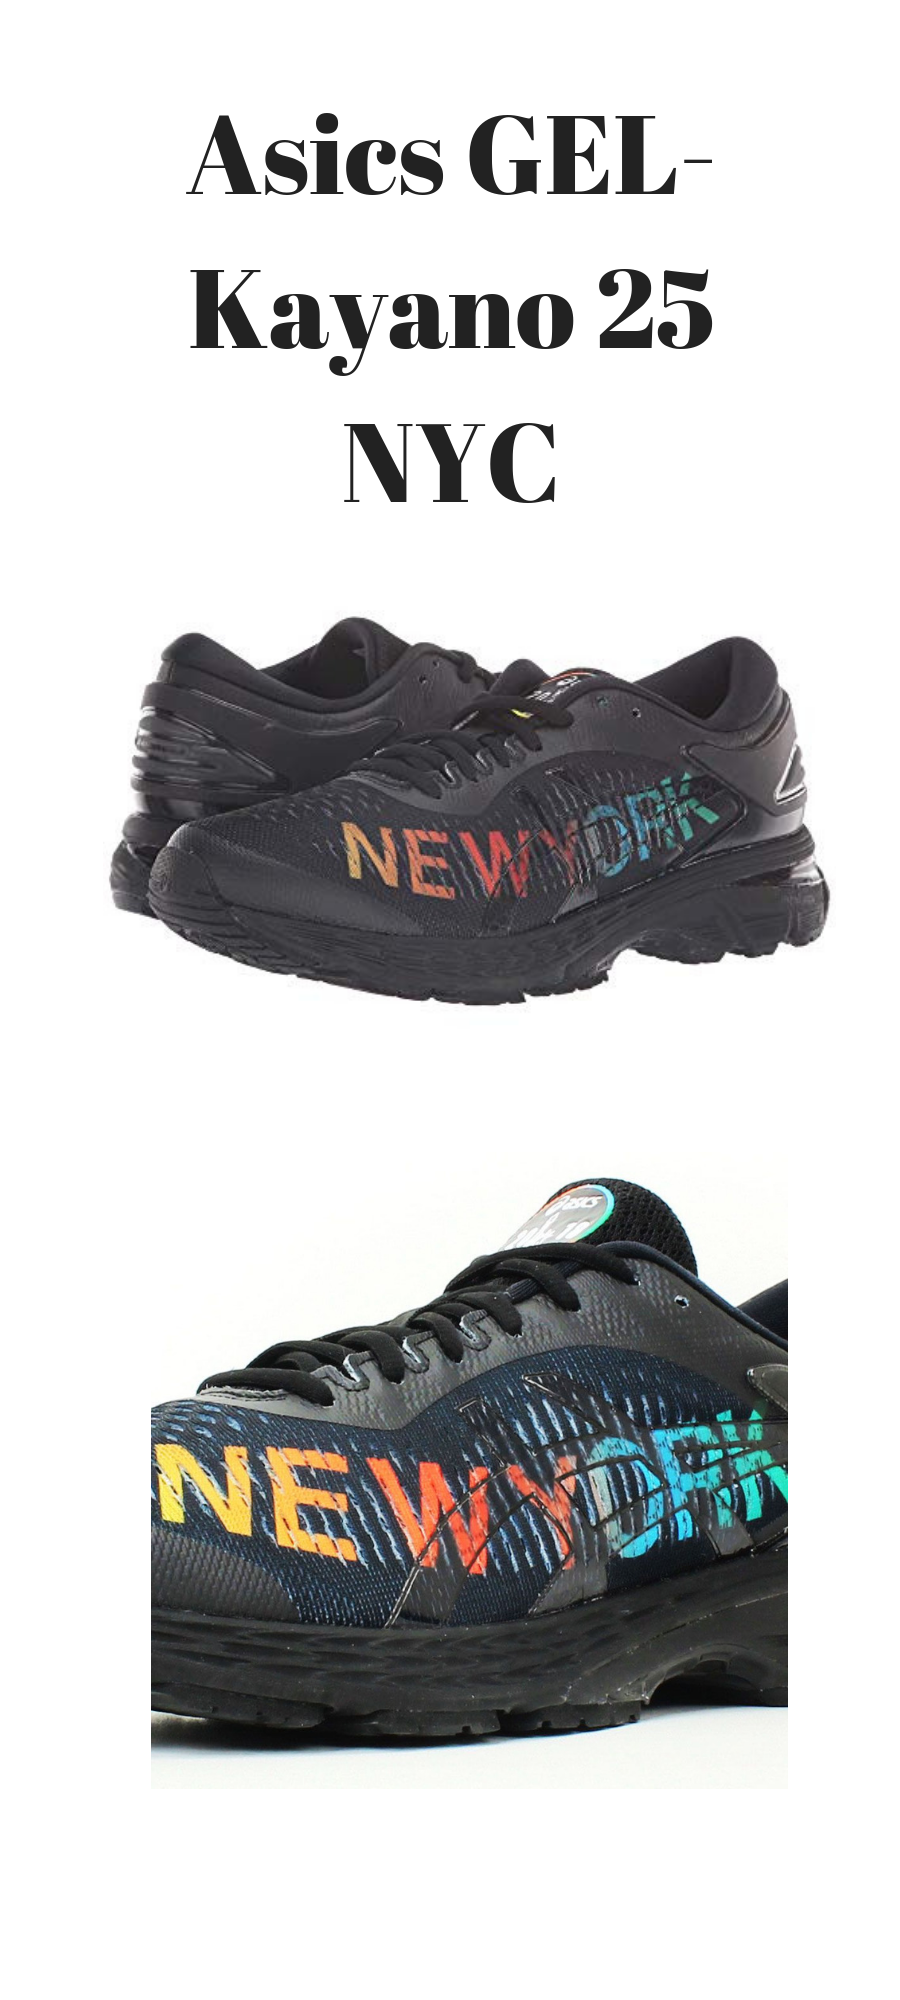 Celebrate the New York City marathon with an exclusive